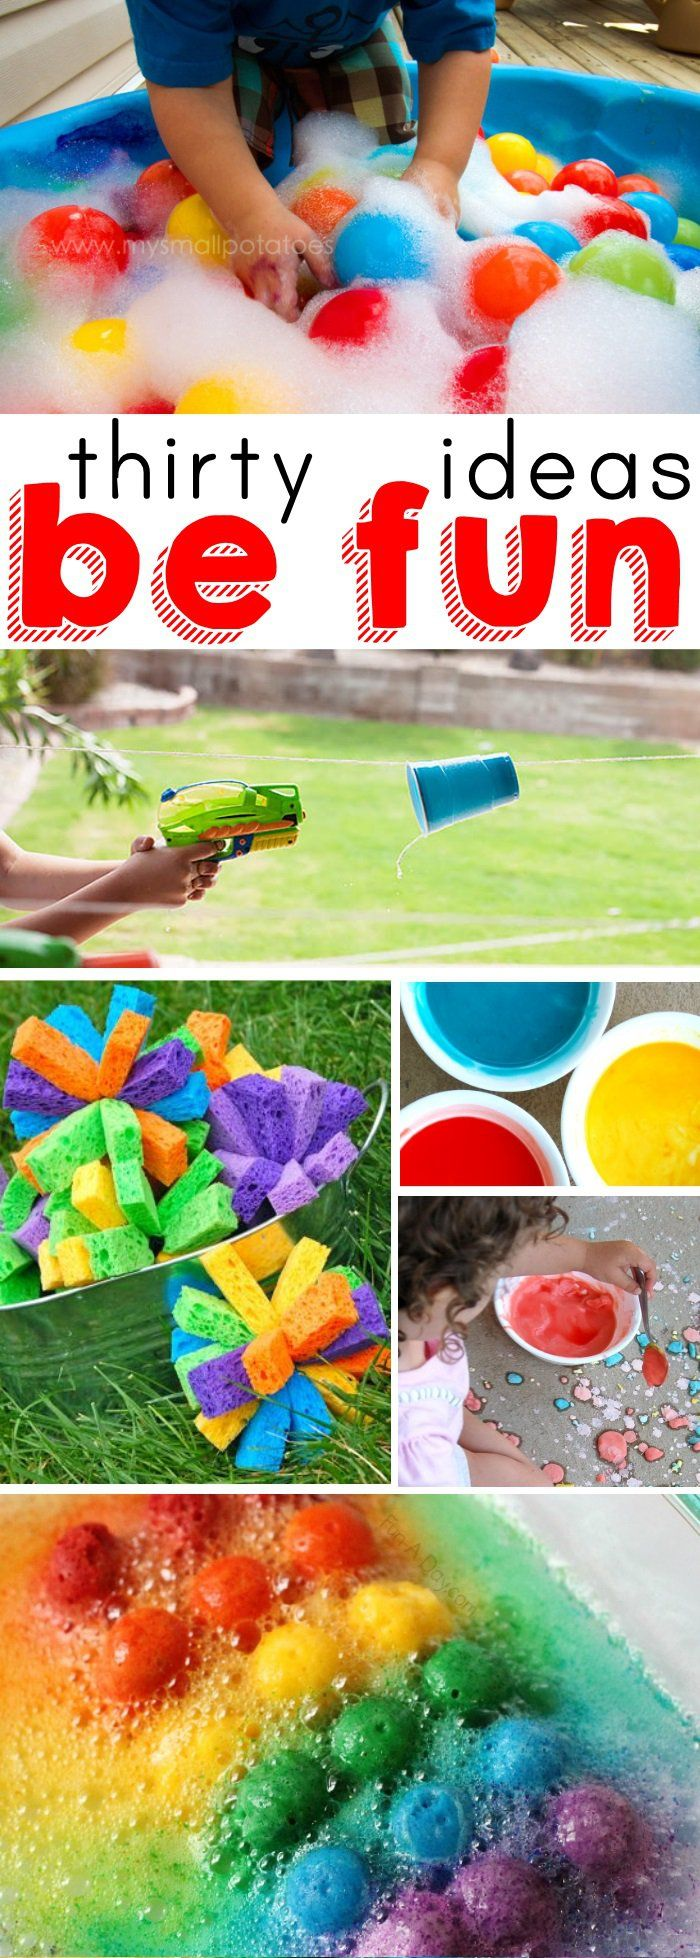 Best 25+ Kid summer ideas on Pinterest | Kids summer camps, Fun ...